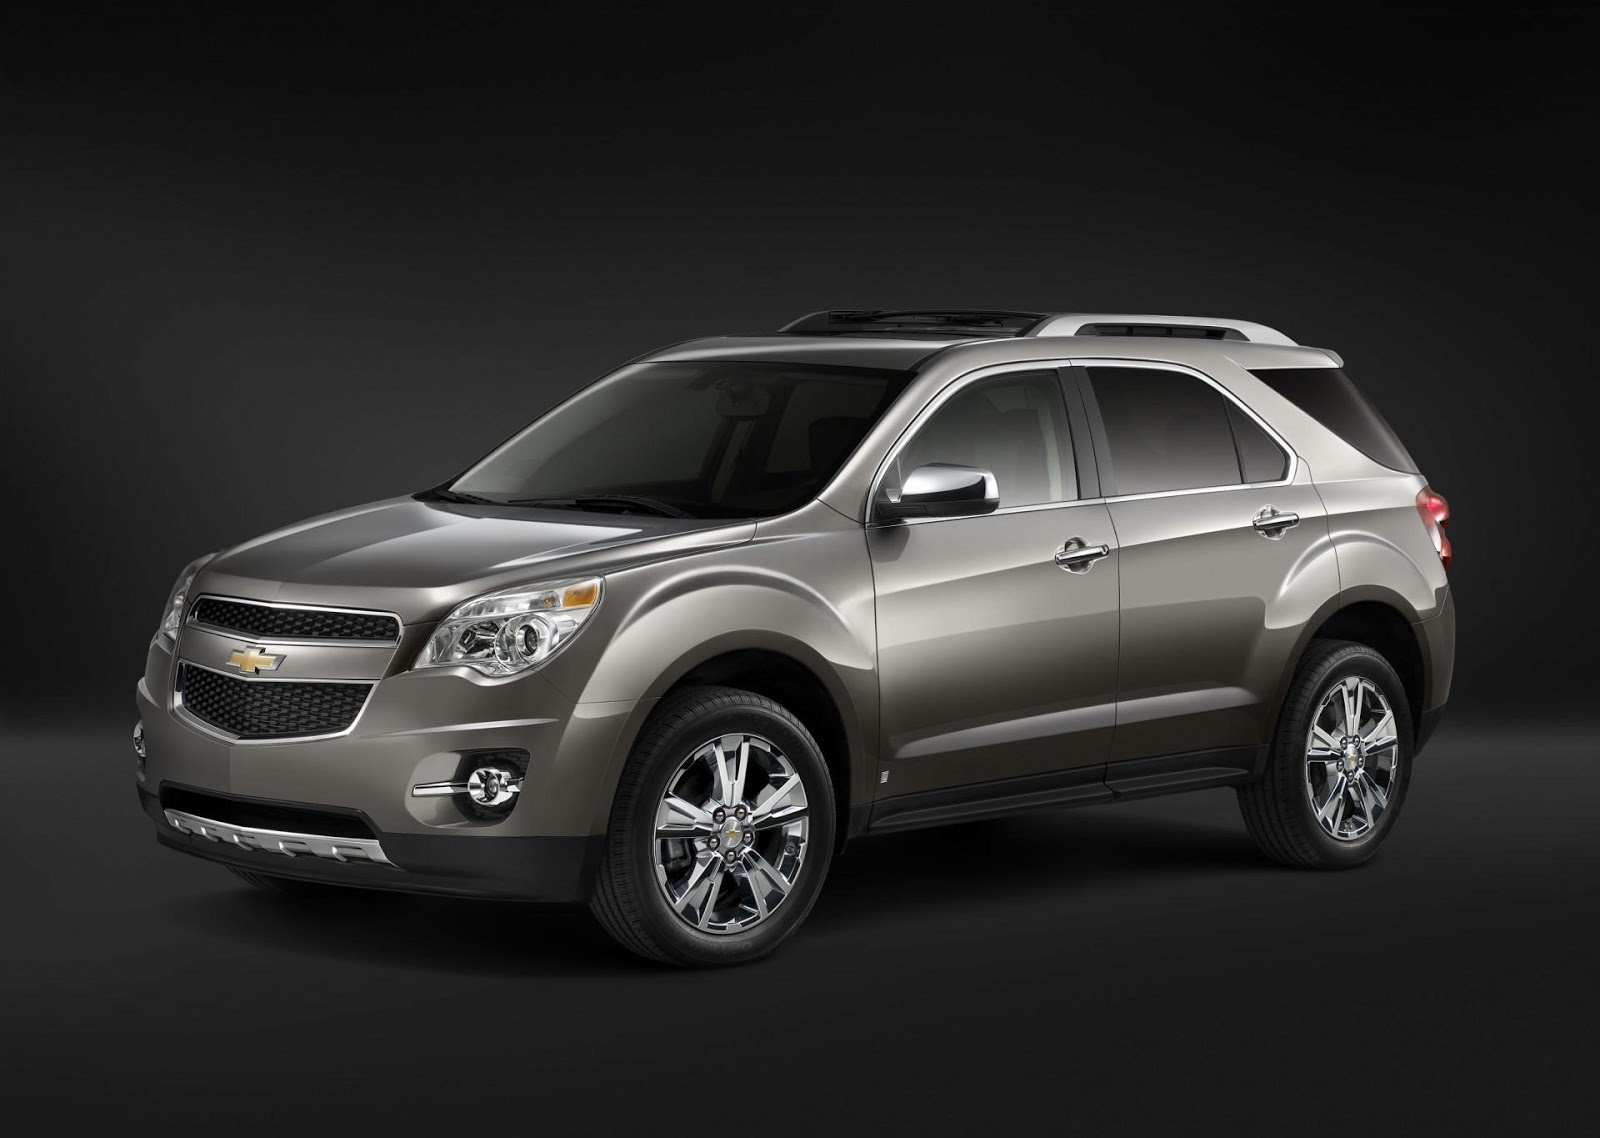 Bobby Rahal Toyota >> Chevrolet Equinox 2014 | Hottest Car Wallpapers | Bestgarage